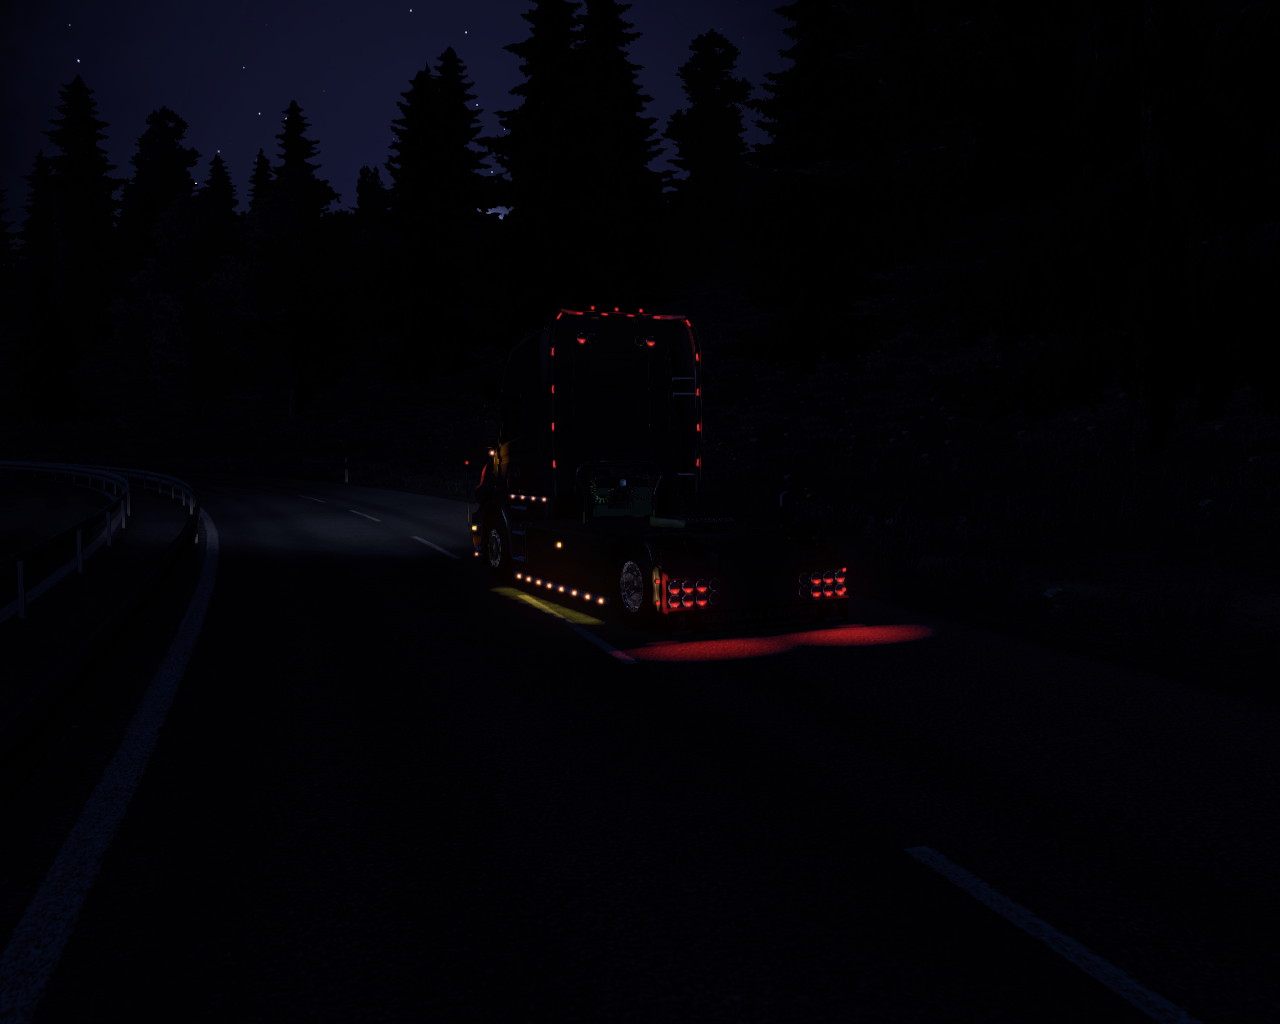 ets2_00193.png